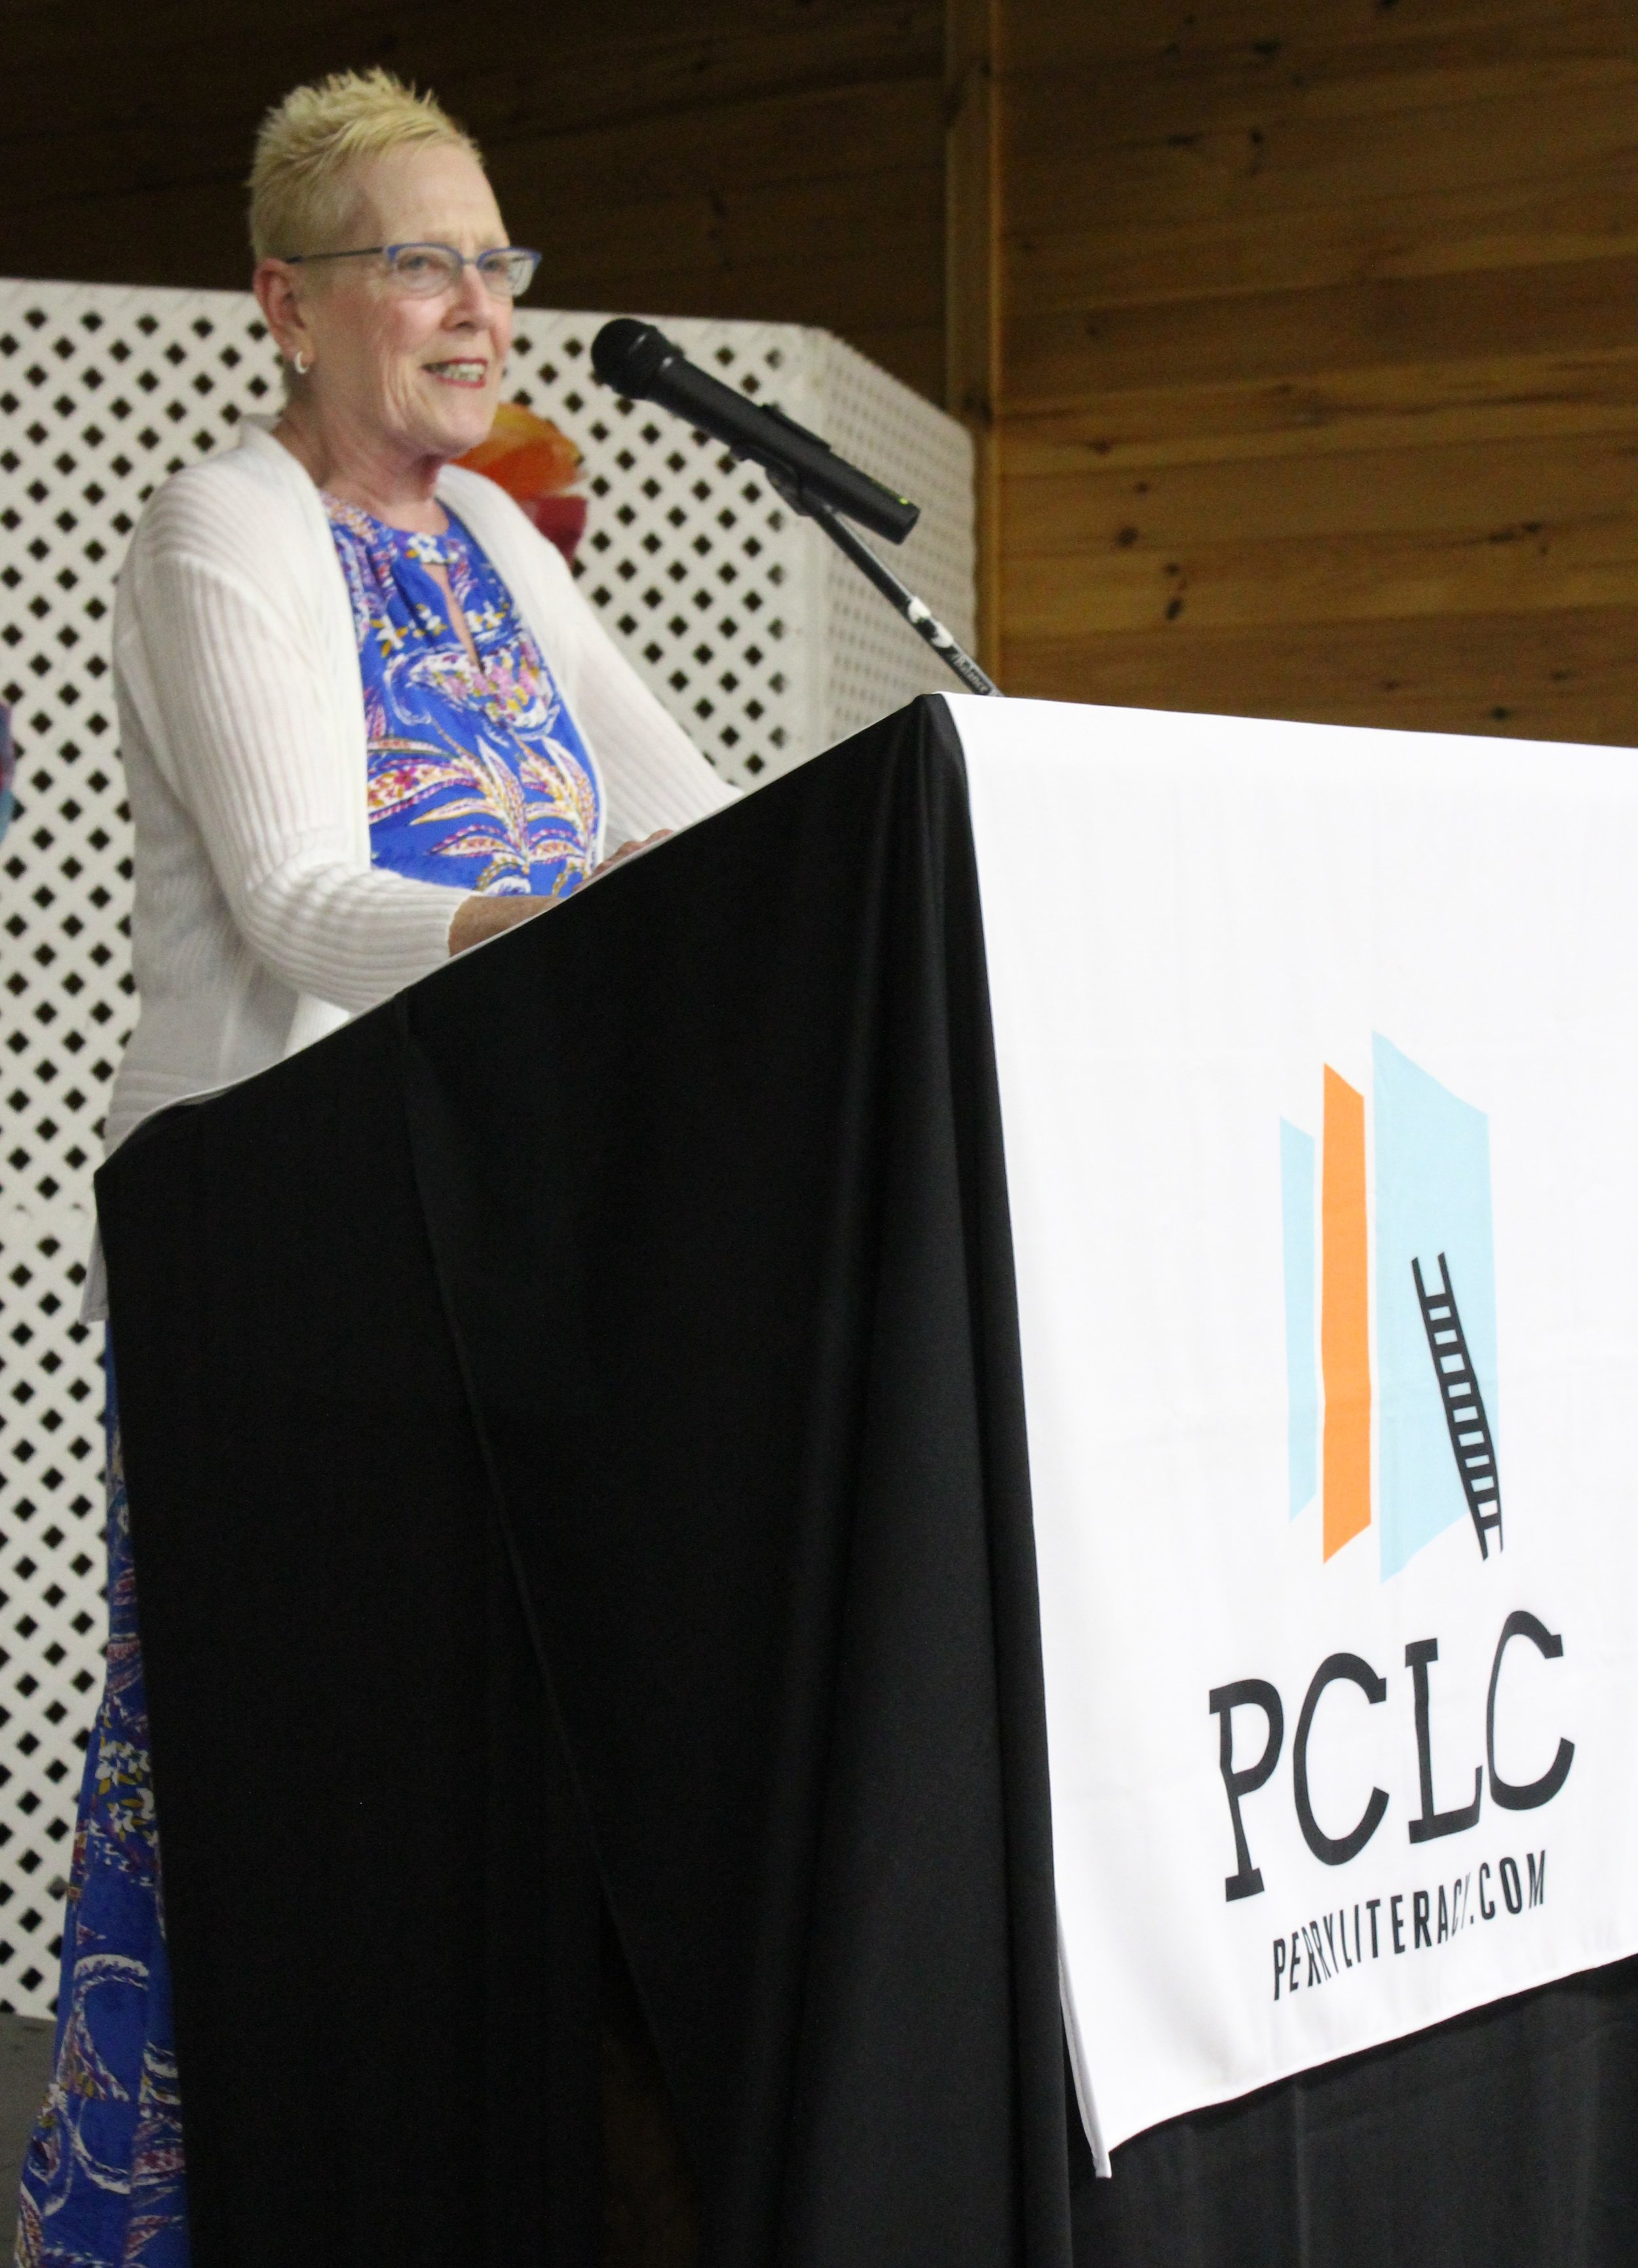 PCLC Executive Director Kathleen Bentley introduced PCLC Students of the Year.